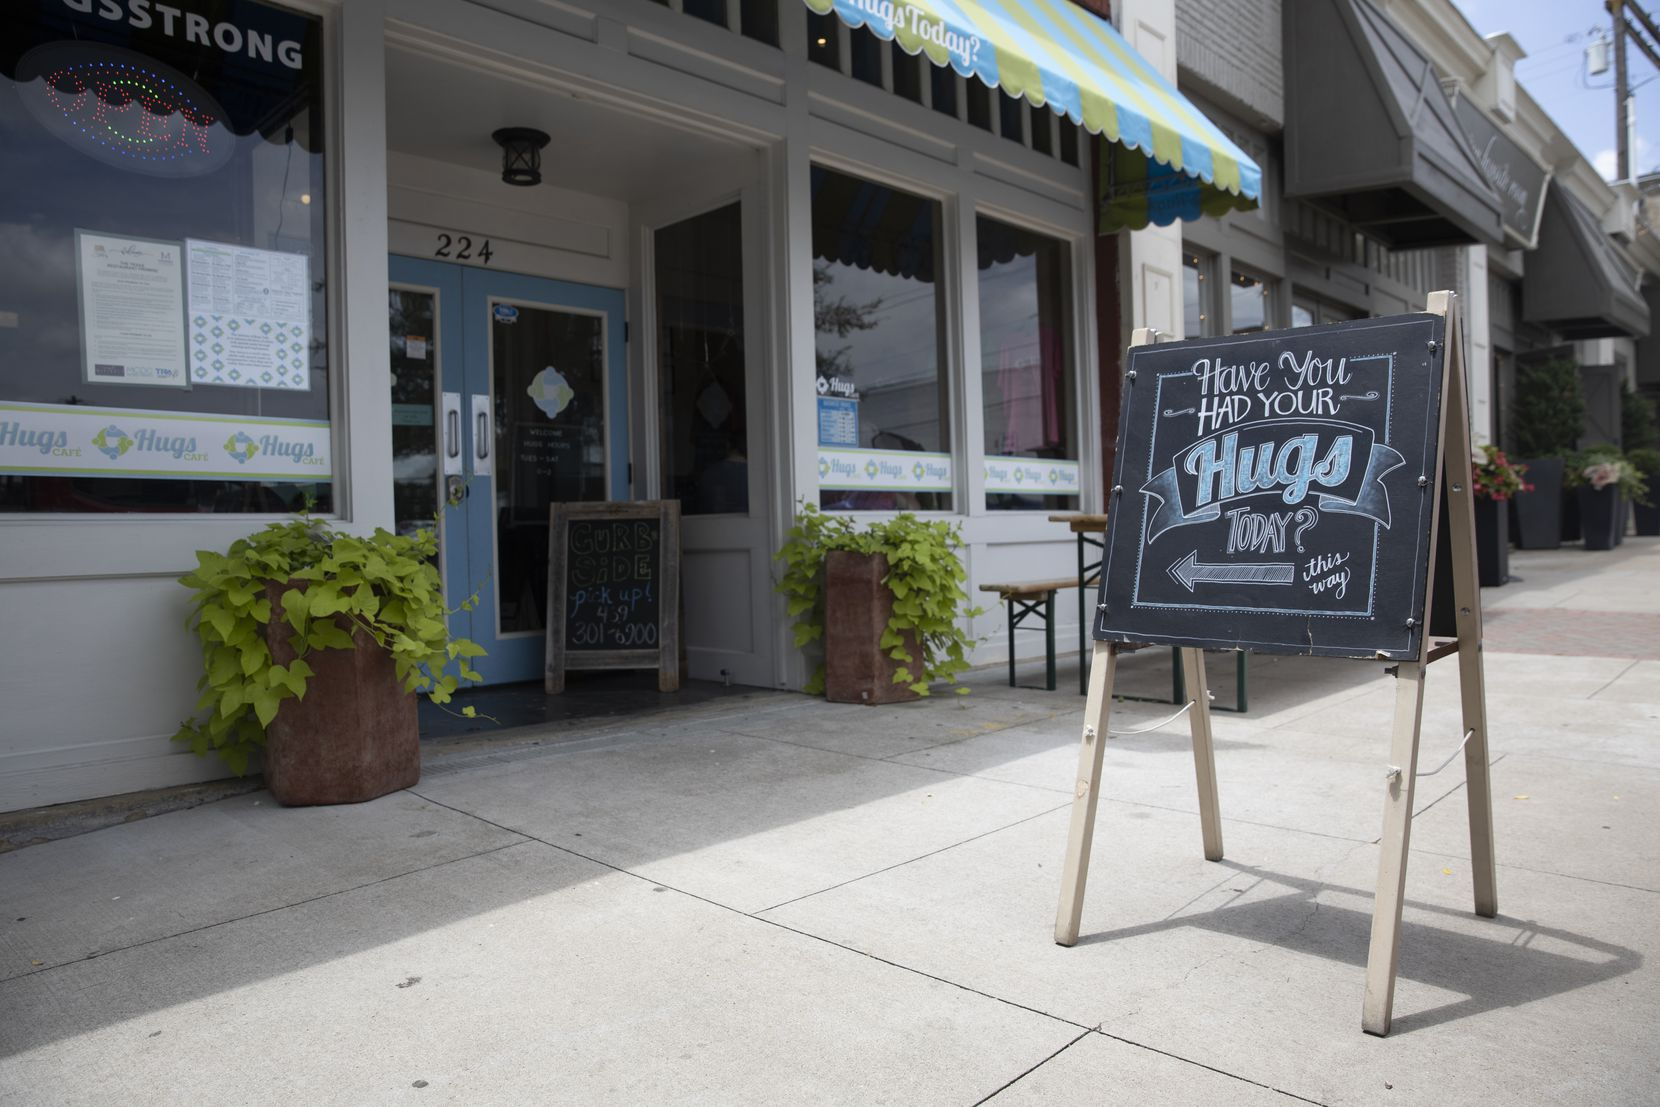 Hugs Café is a popular lunch spot just off the historic square in McKinney.